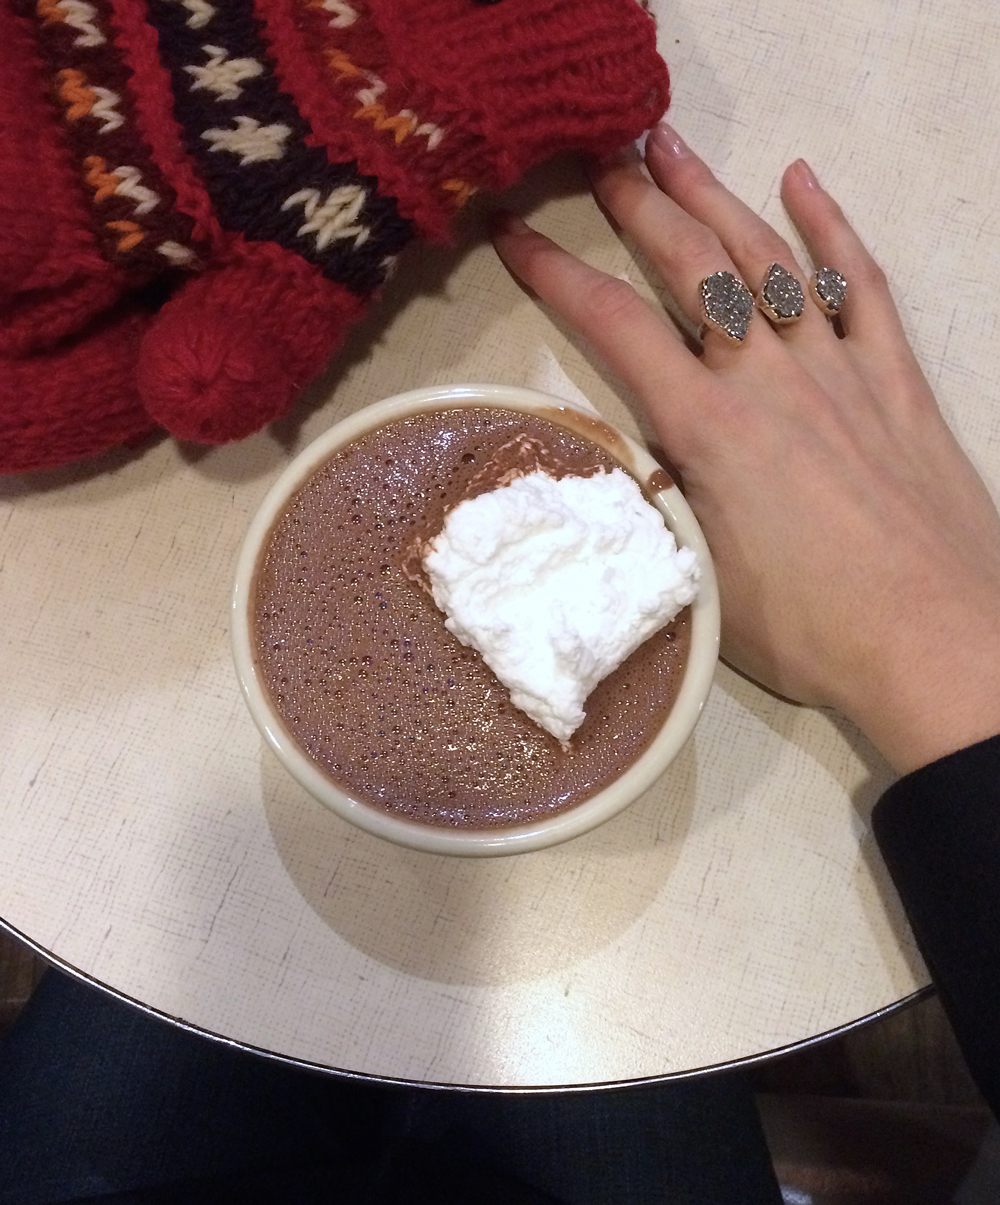 City-Bakery-hot-chocolate.jpg